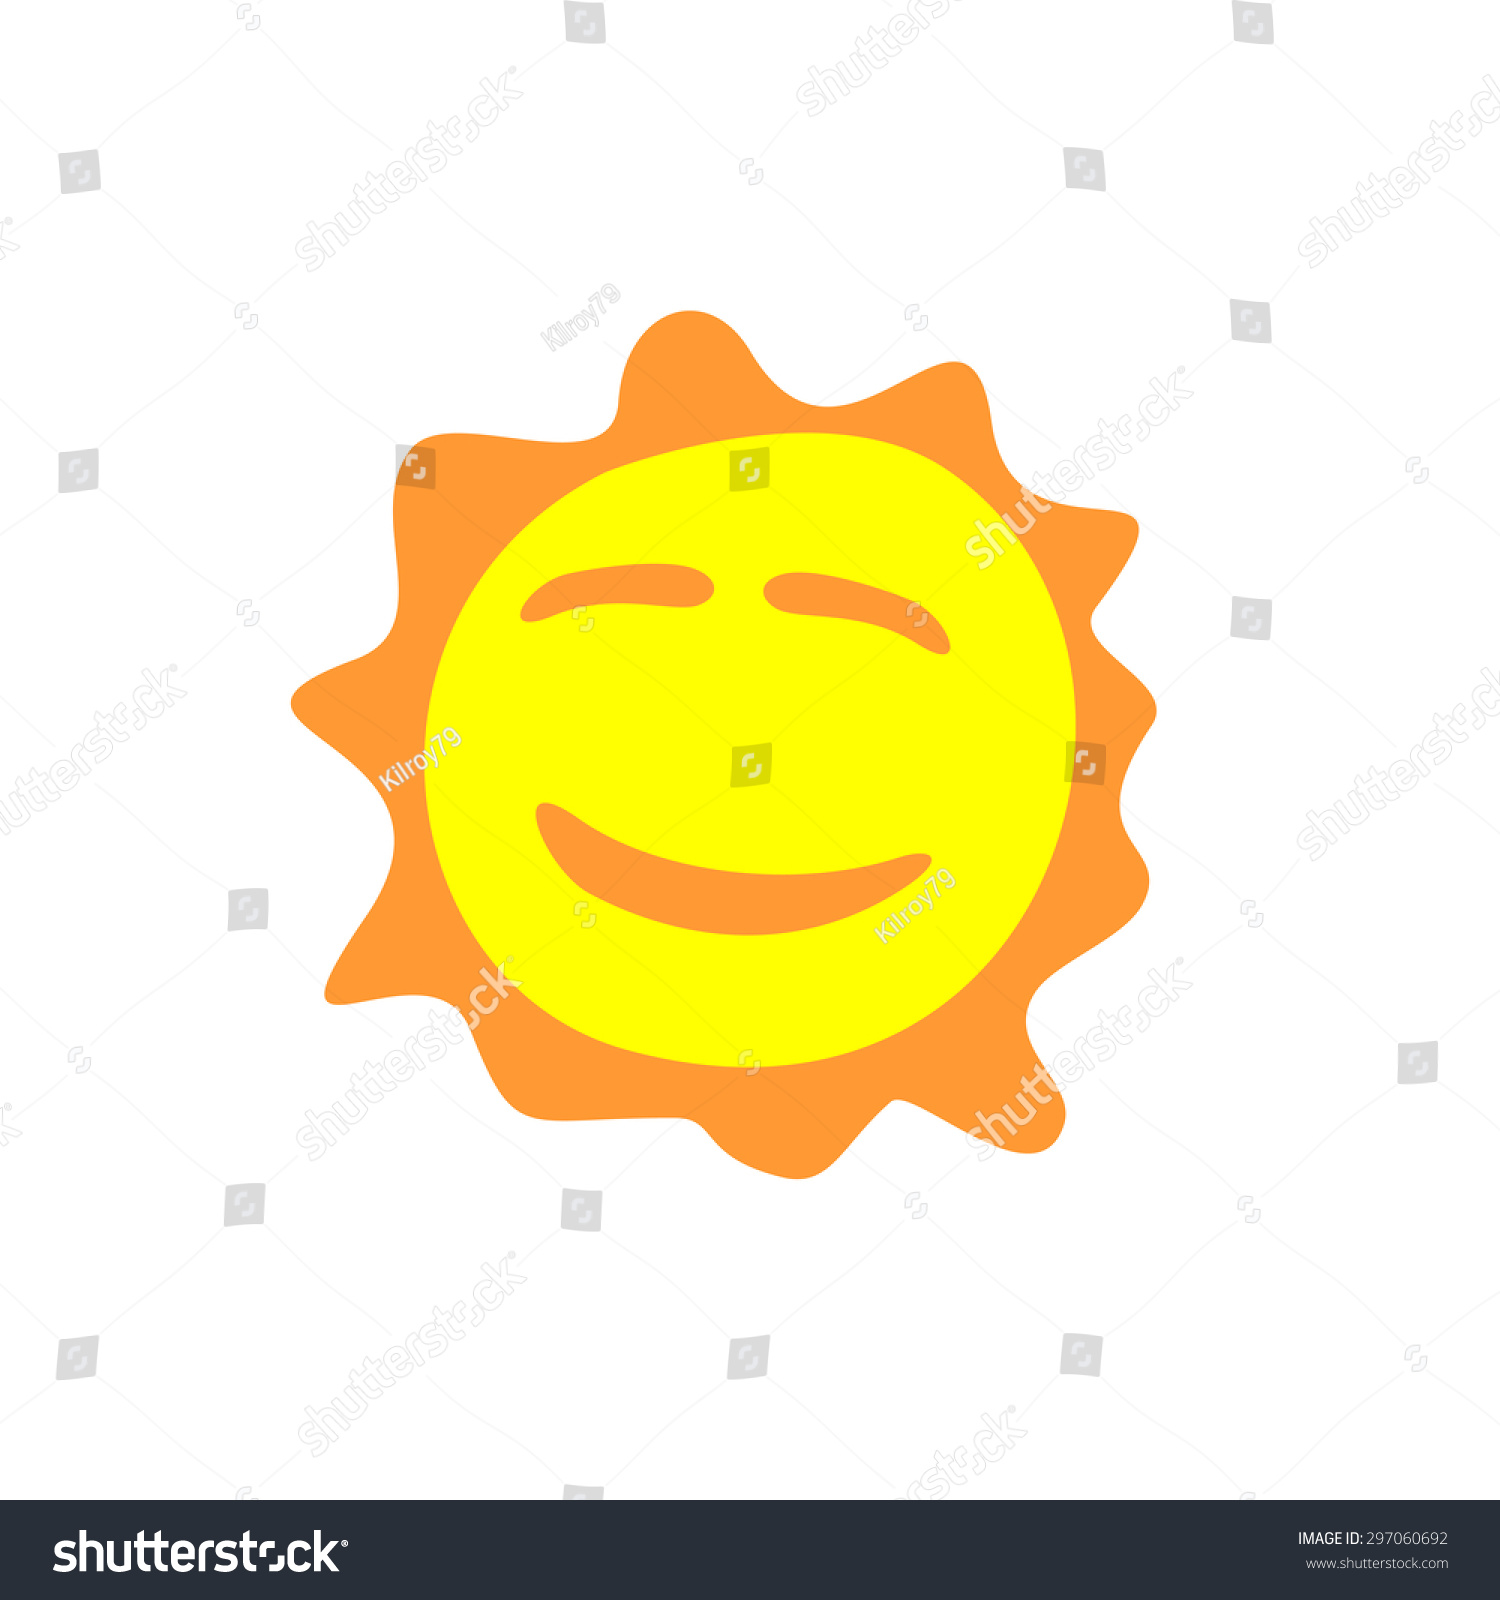 Smiling sun images - Sunshine Fun Sign Smiling Sun Logo